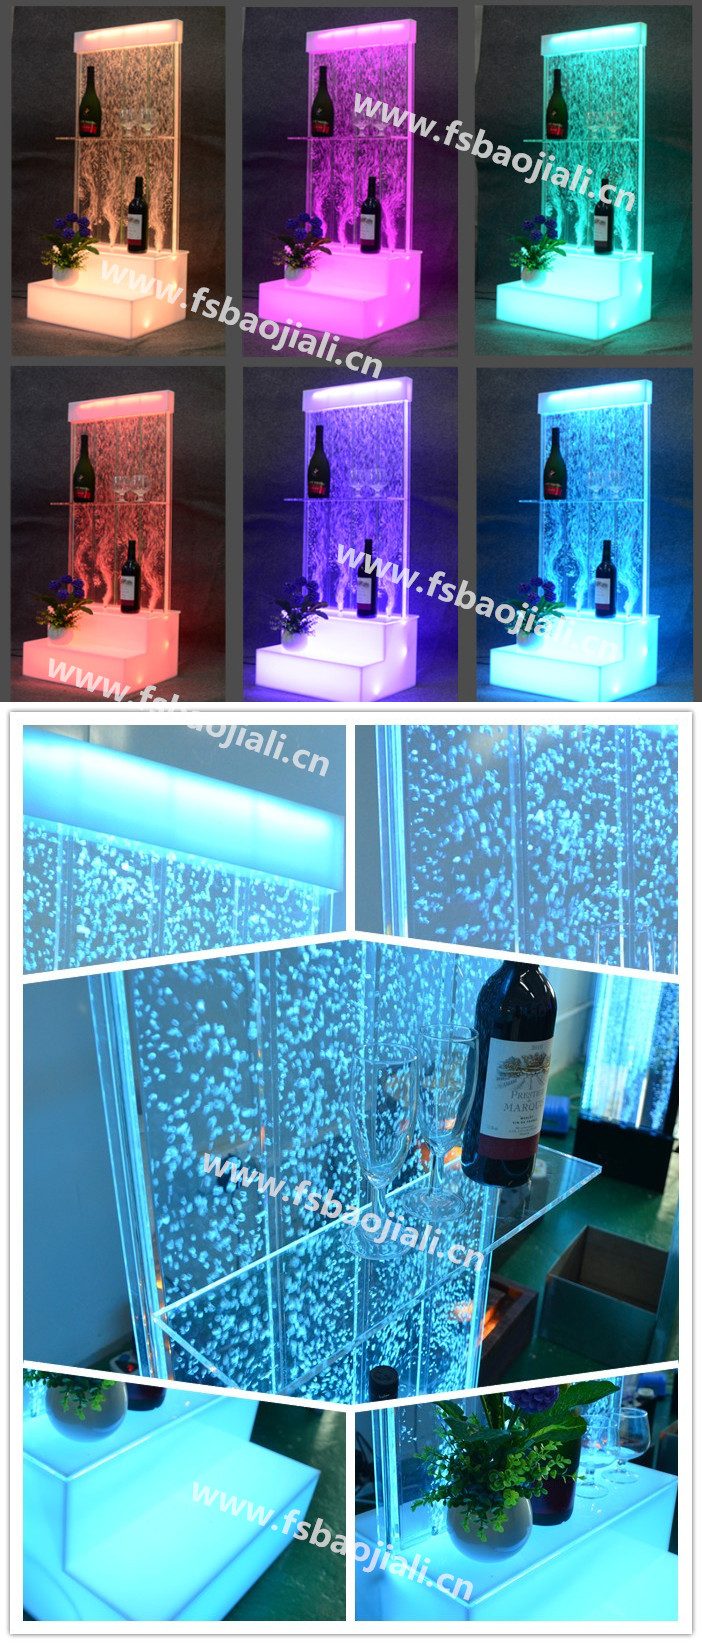 fish aquarium supply Fashion design tall led lighting aquarium tank cabinet led lounge furniture for night club decor